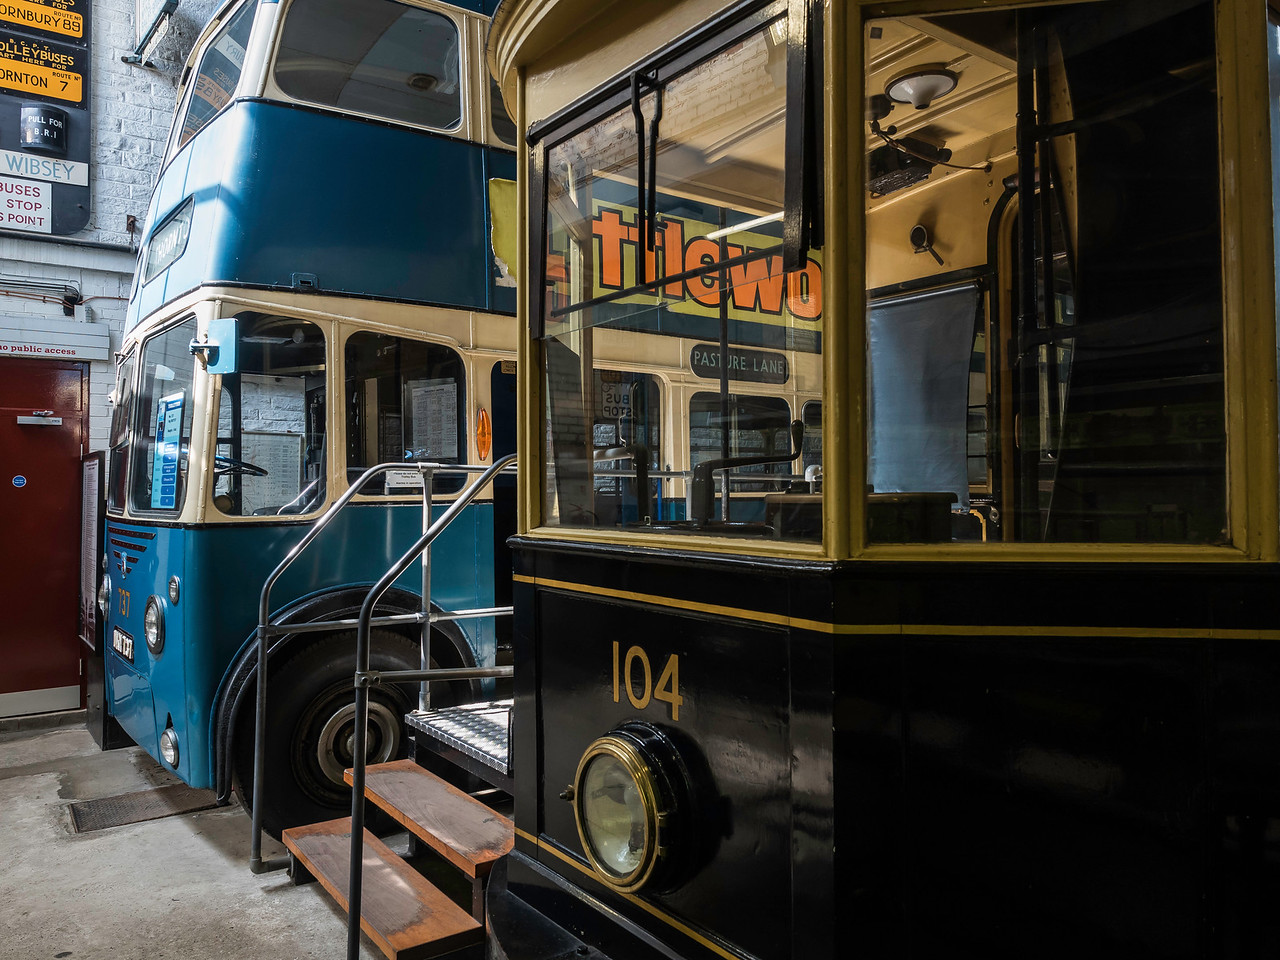 Tram and Trolley